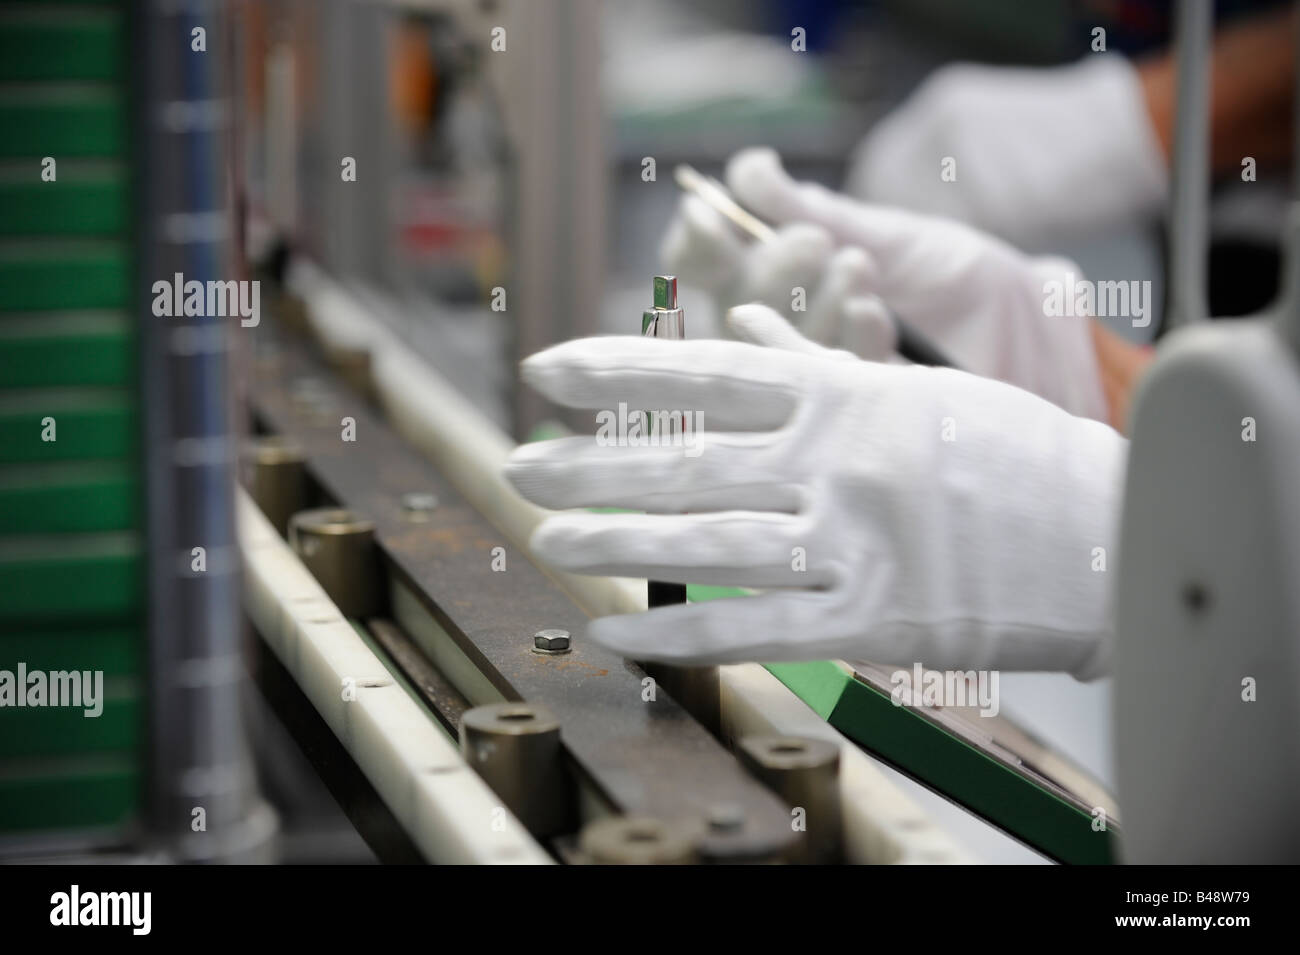 Parker Pen factory in Newhaven, Sussex, UK. the assembly line of the famous pen brand as it celebrated 120 years - Stock Image